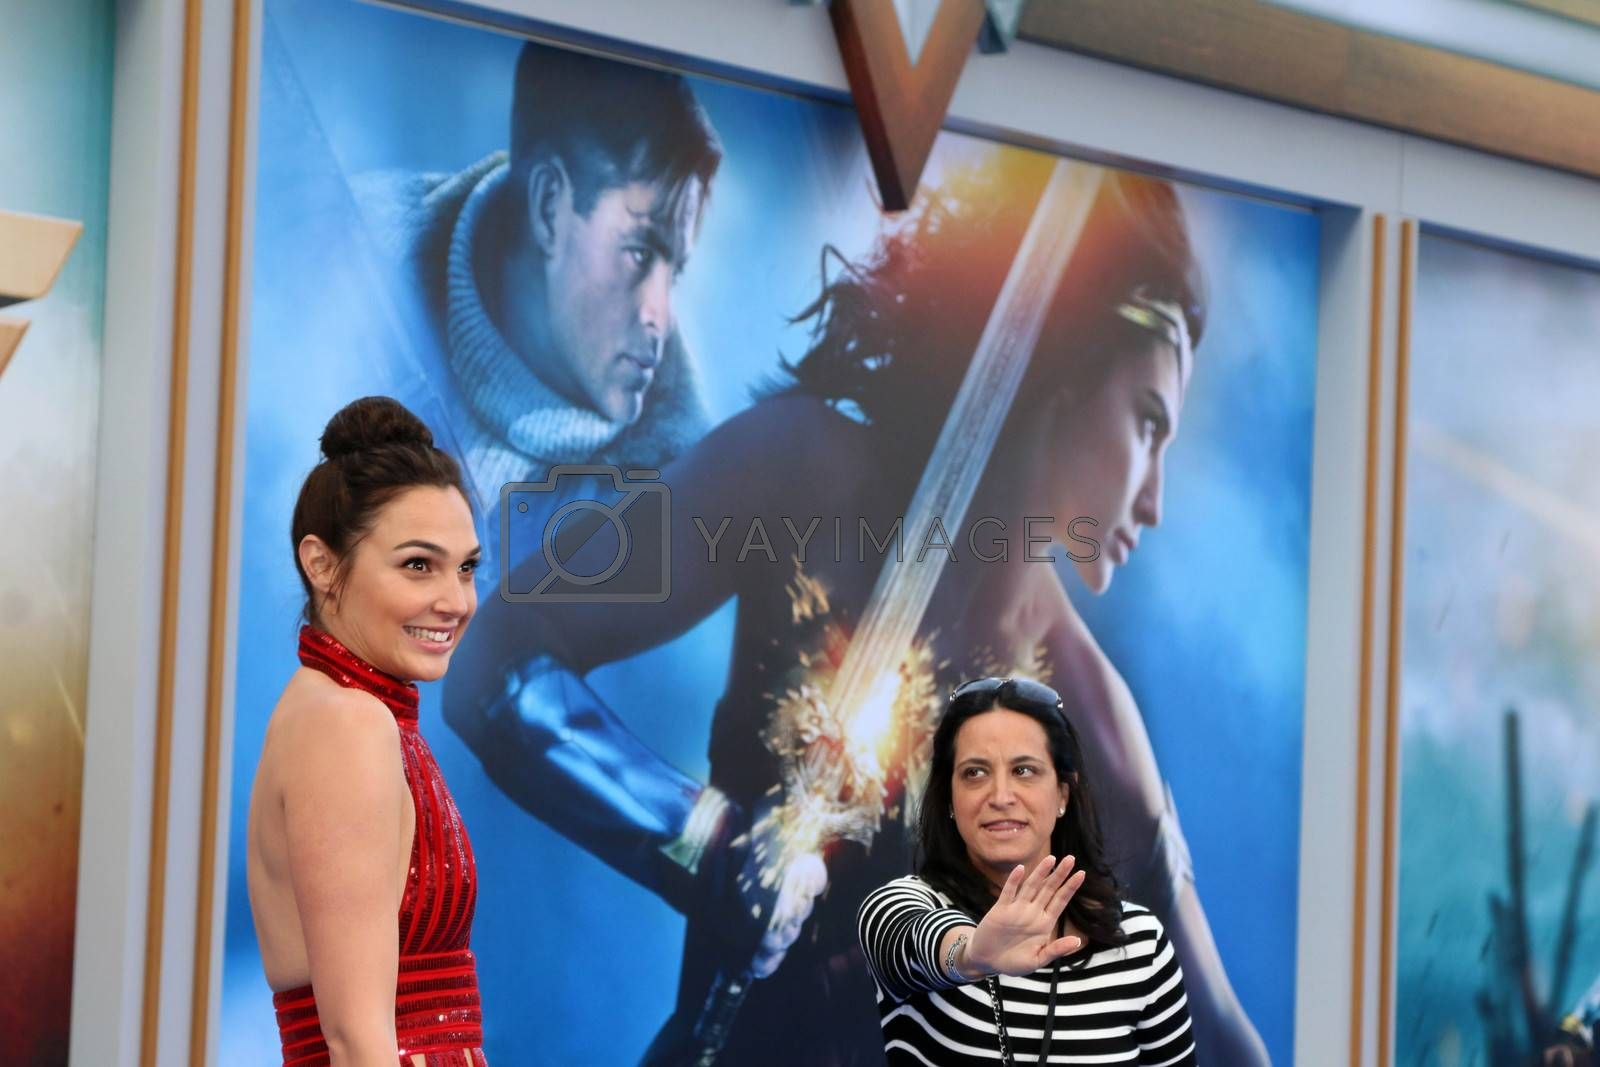 """Gal Gadot at the """"Wonder Woman"""" Premiere, Pantages, Hollywood, CA 05-25-17/ImageCollect by ImageCollect"""